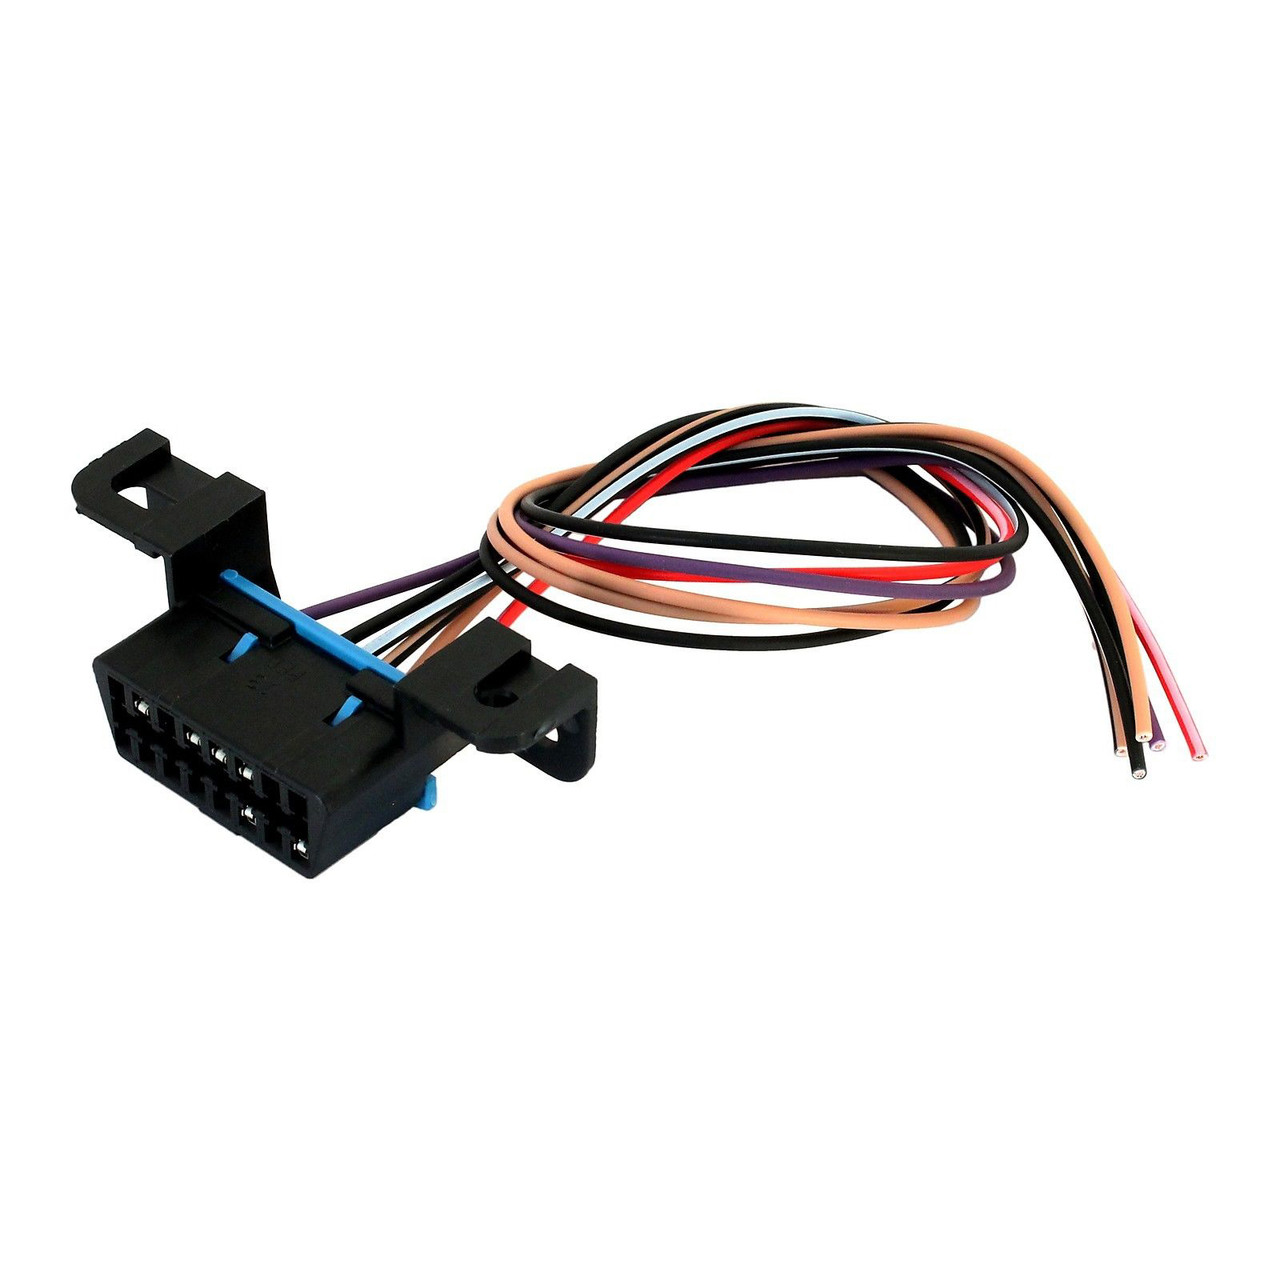 obdii obd2 j1962 class 2 can bus wiring harness connector pigtail16p conn dlc can pt f 10644 [ 1280 x 1280 Pixel ]